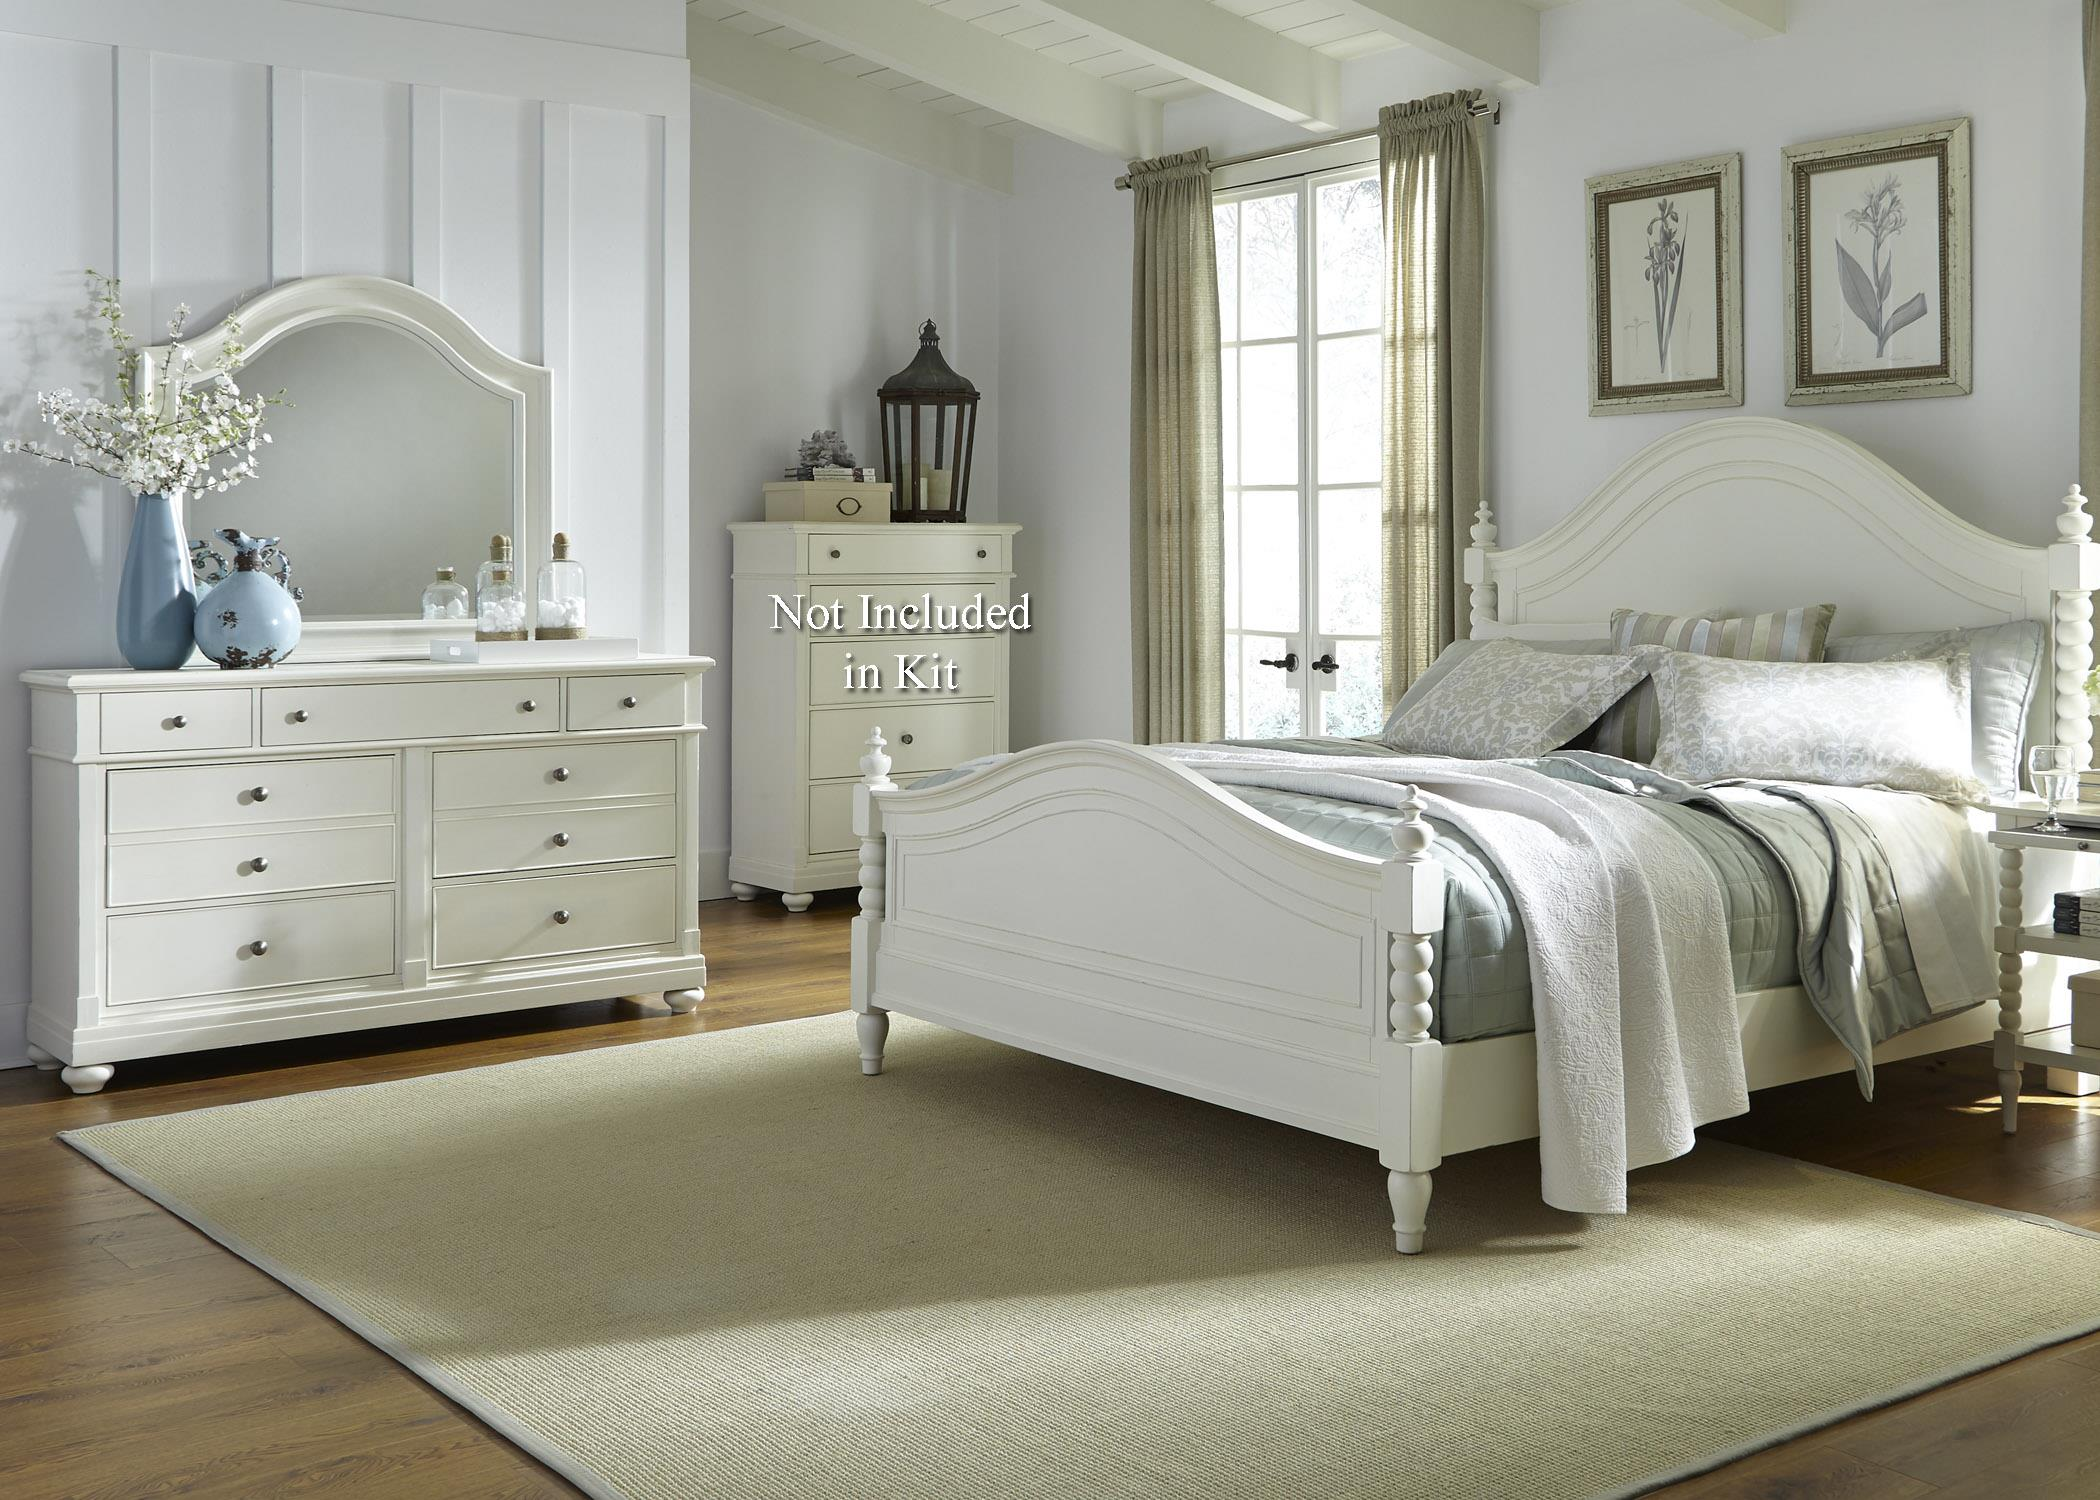 Liberty Furniture Harbor View Queen Bedroom Group - Item Number: 631-BR-QPSDM